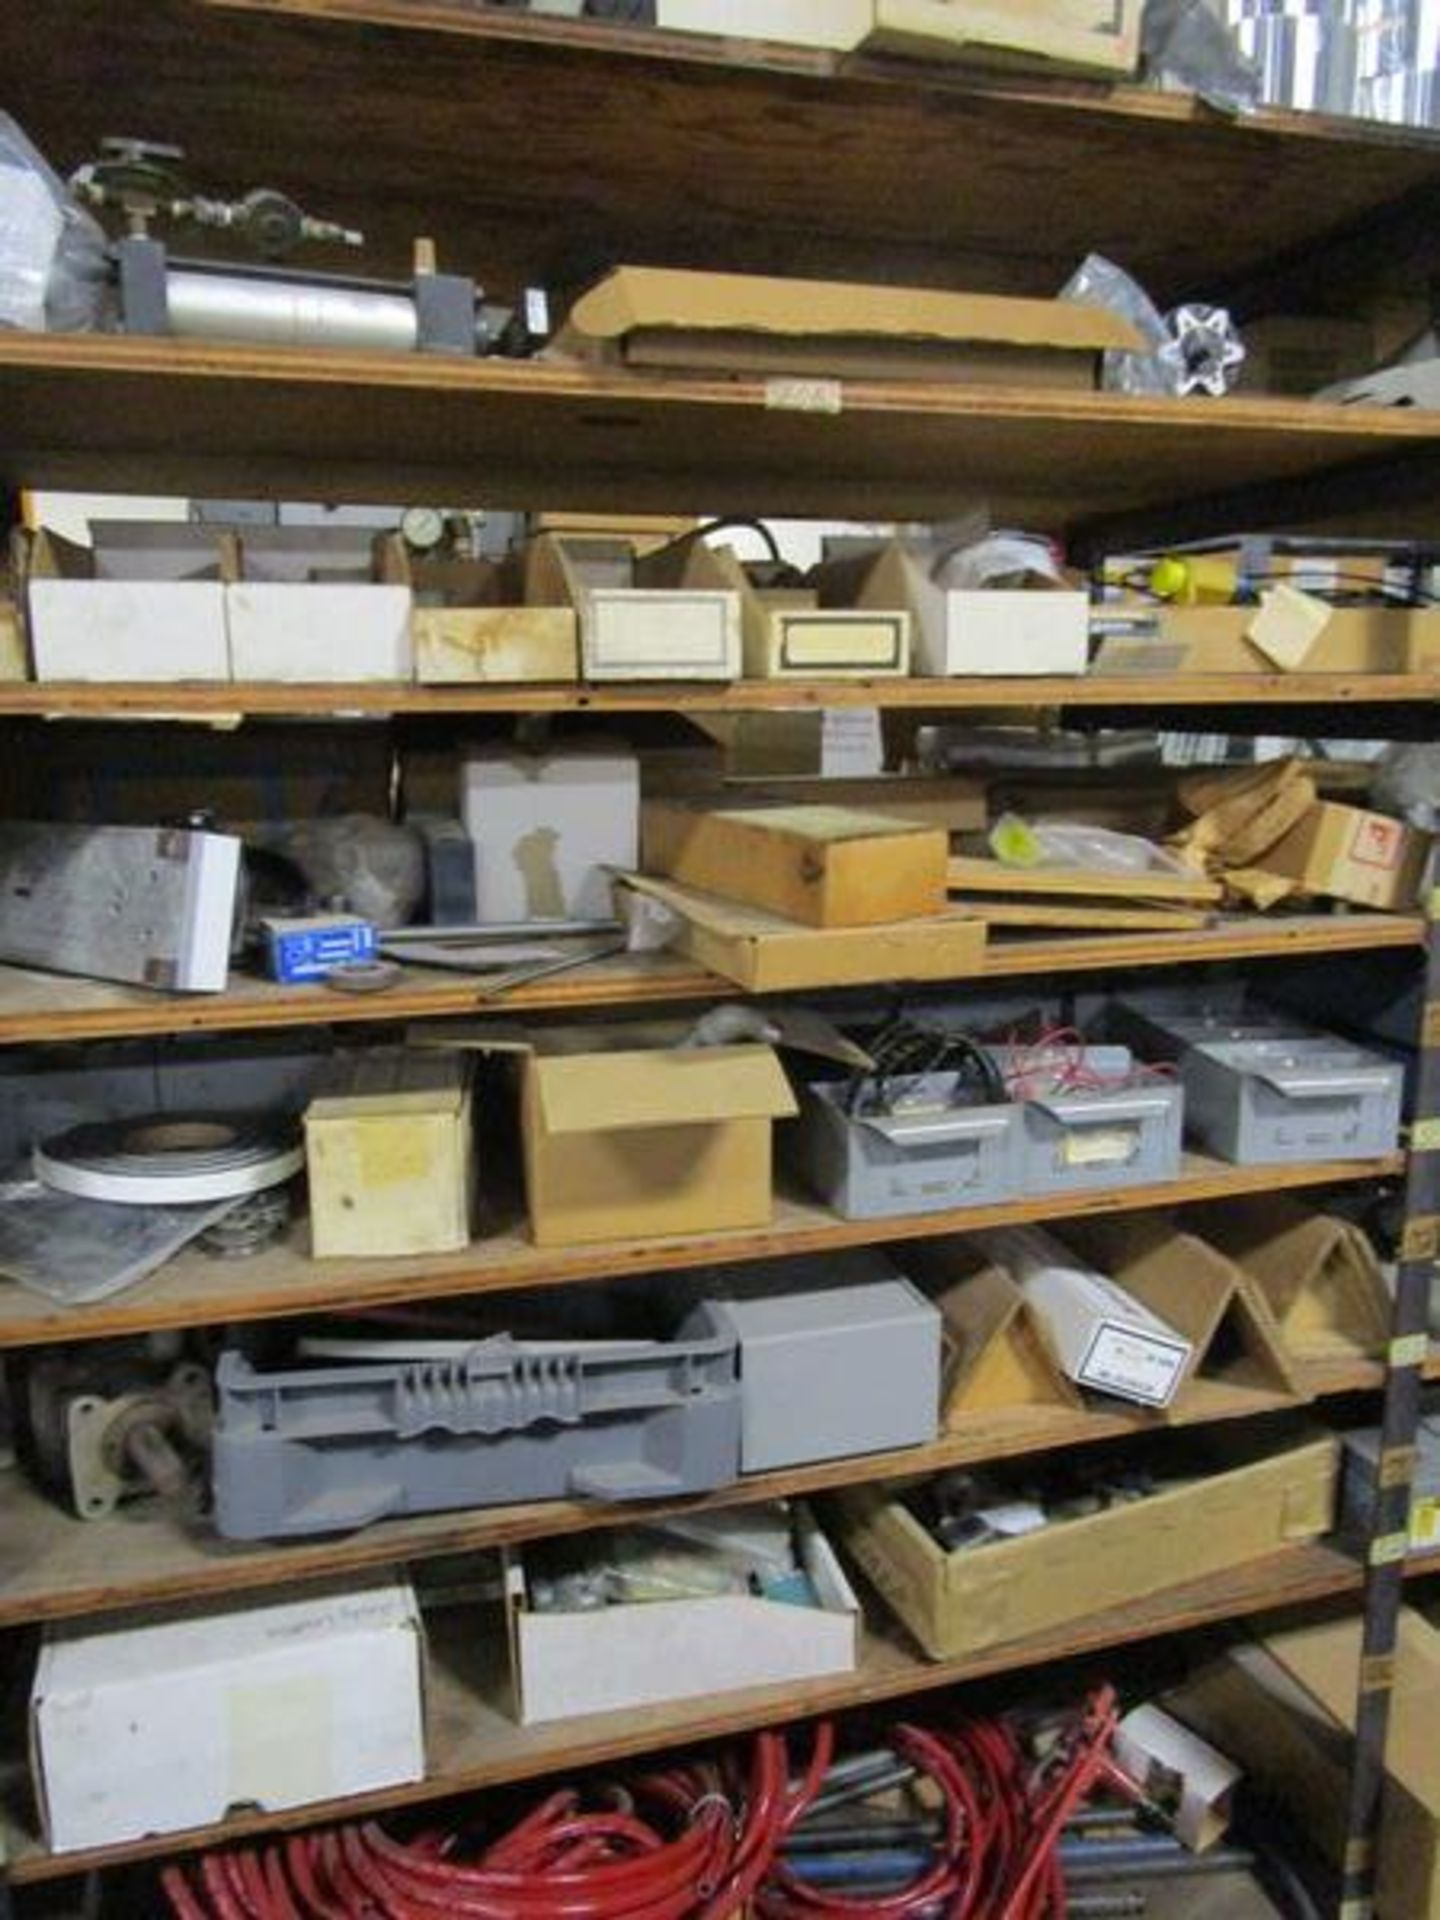 Lot Meters, Electrical Supplies, Wire, Components, Pins, Gages, Solderer, Etc. in 4 Sections - Image 4 of 5